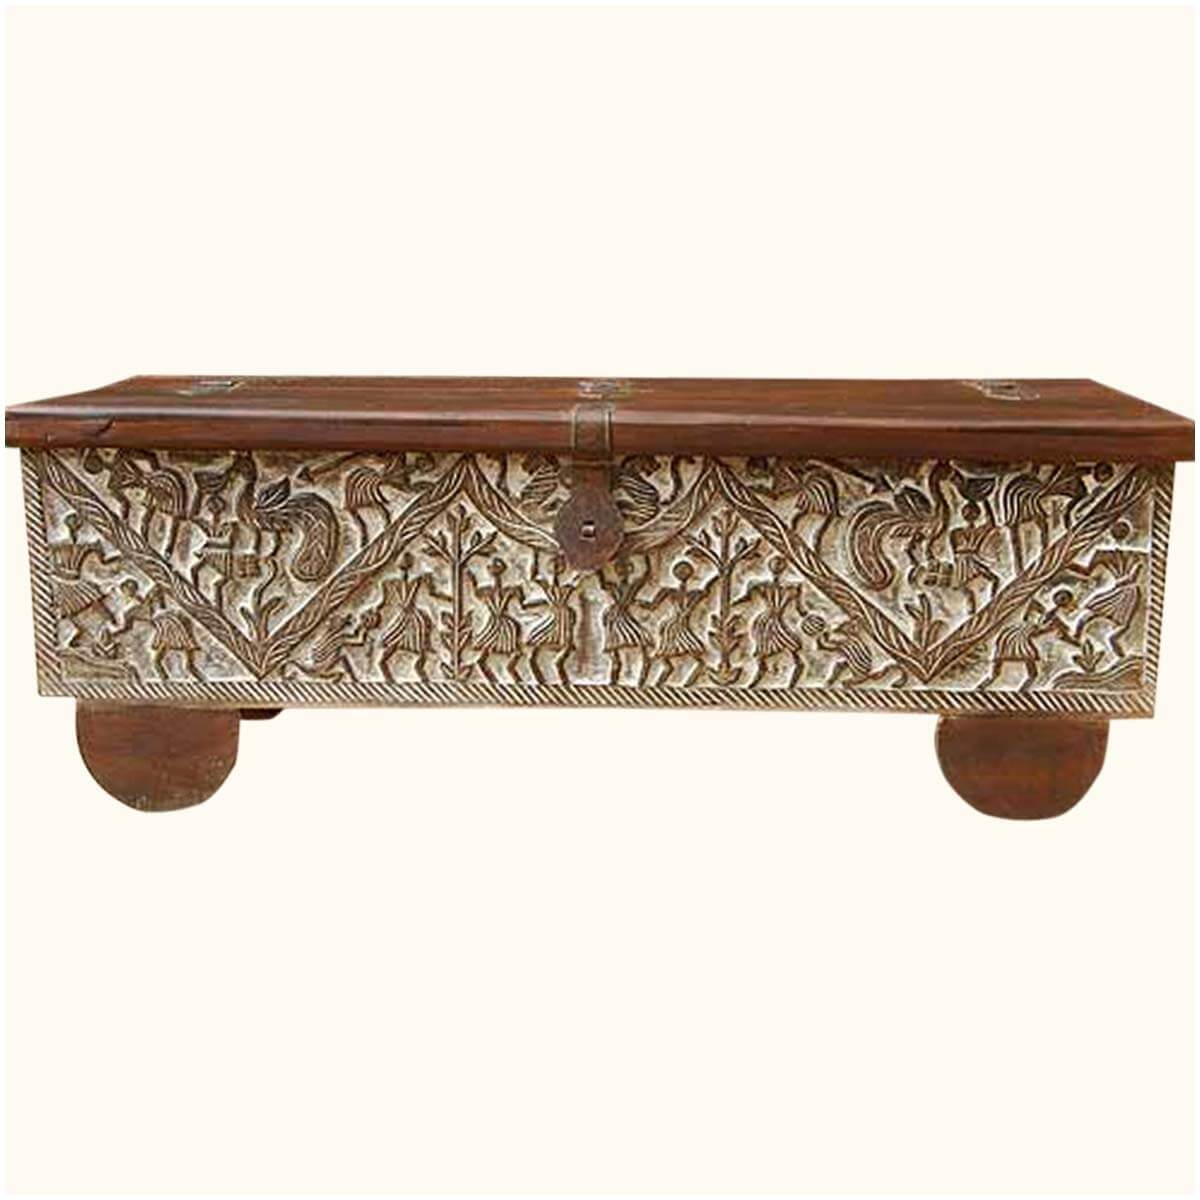 Masterpiece hand carved mango wood storage trunk coffee table Hand carved coffee table